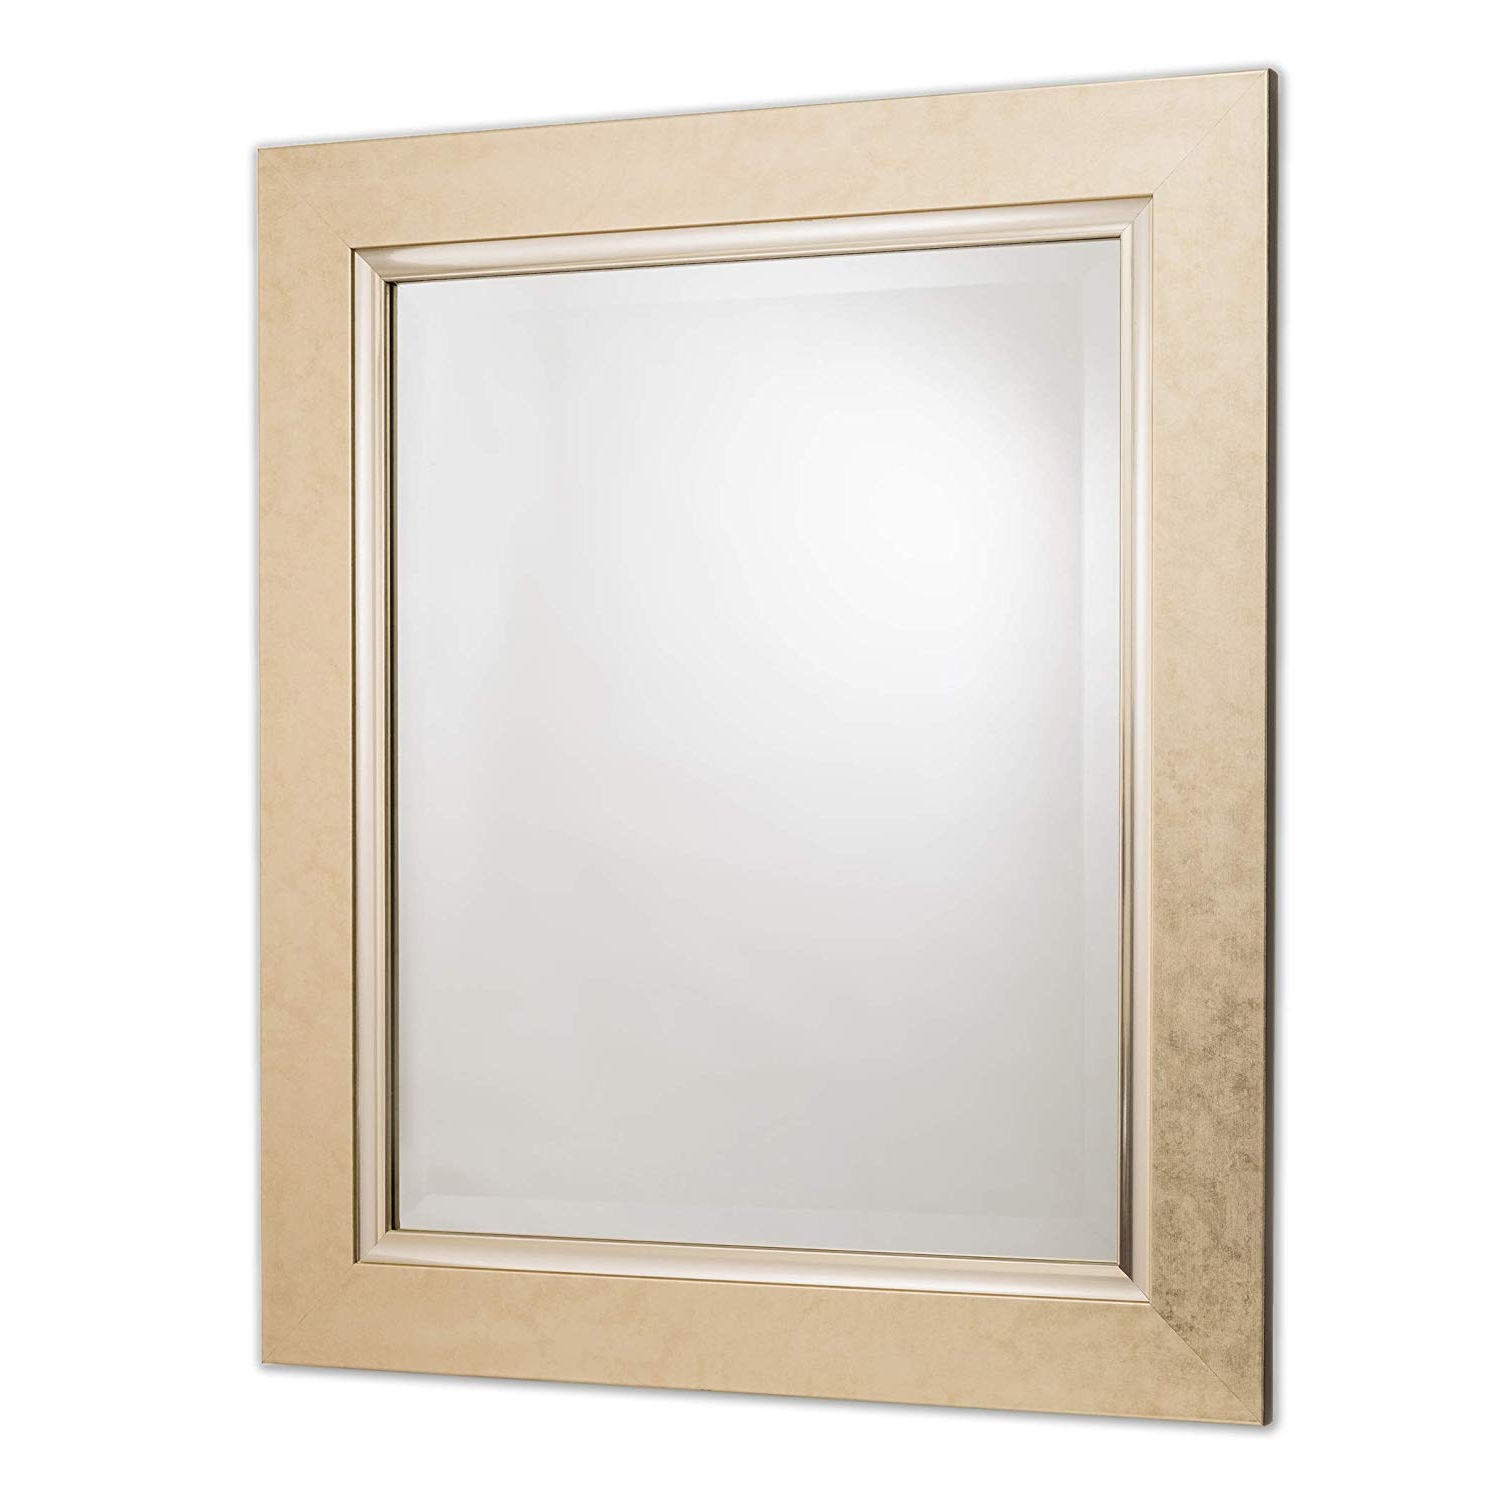 "Rectangle Plastic Beveled Wall Mirrors With Regard To 2019 Wall Mirror Decorative Vanity – Bathroom Rectangular Vintage Gold Beveled Frame 22""x28"" (View 6 of 20)"